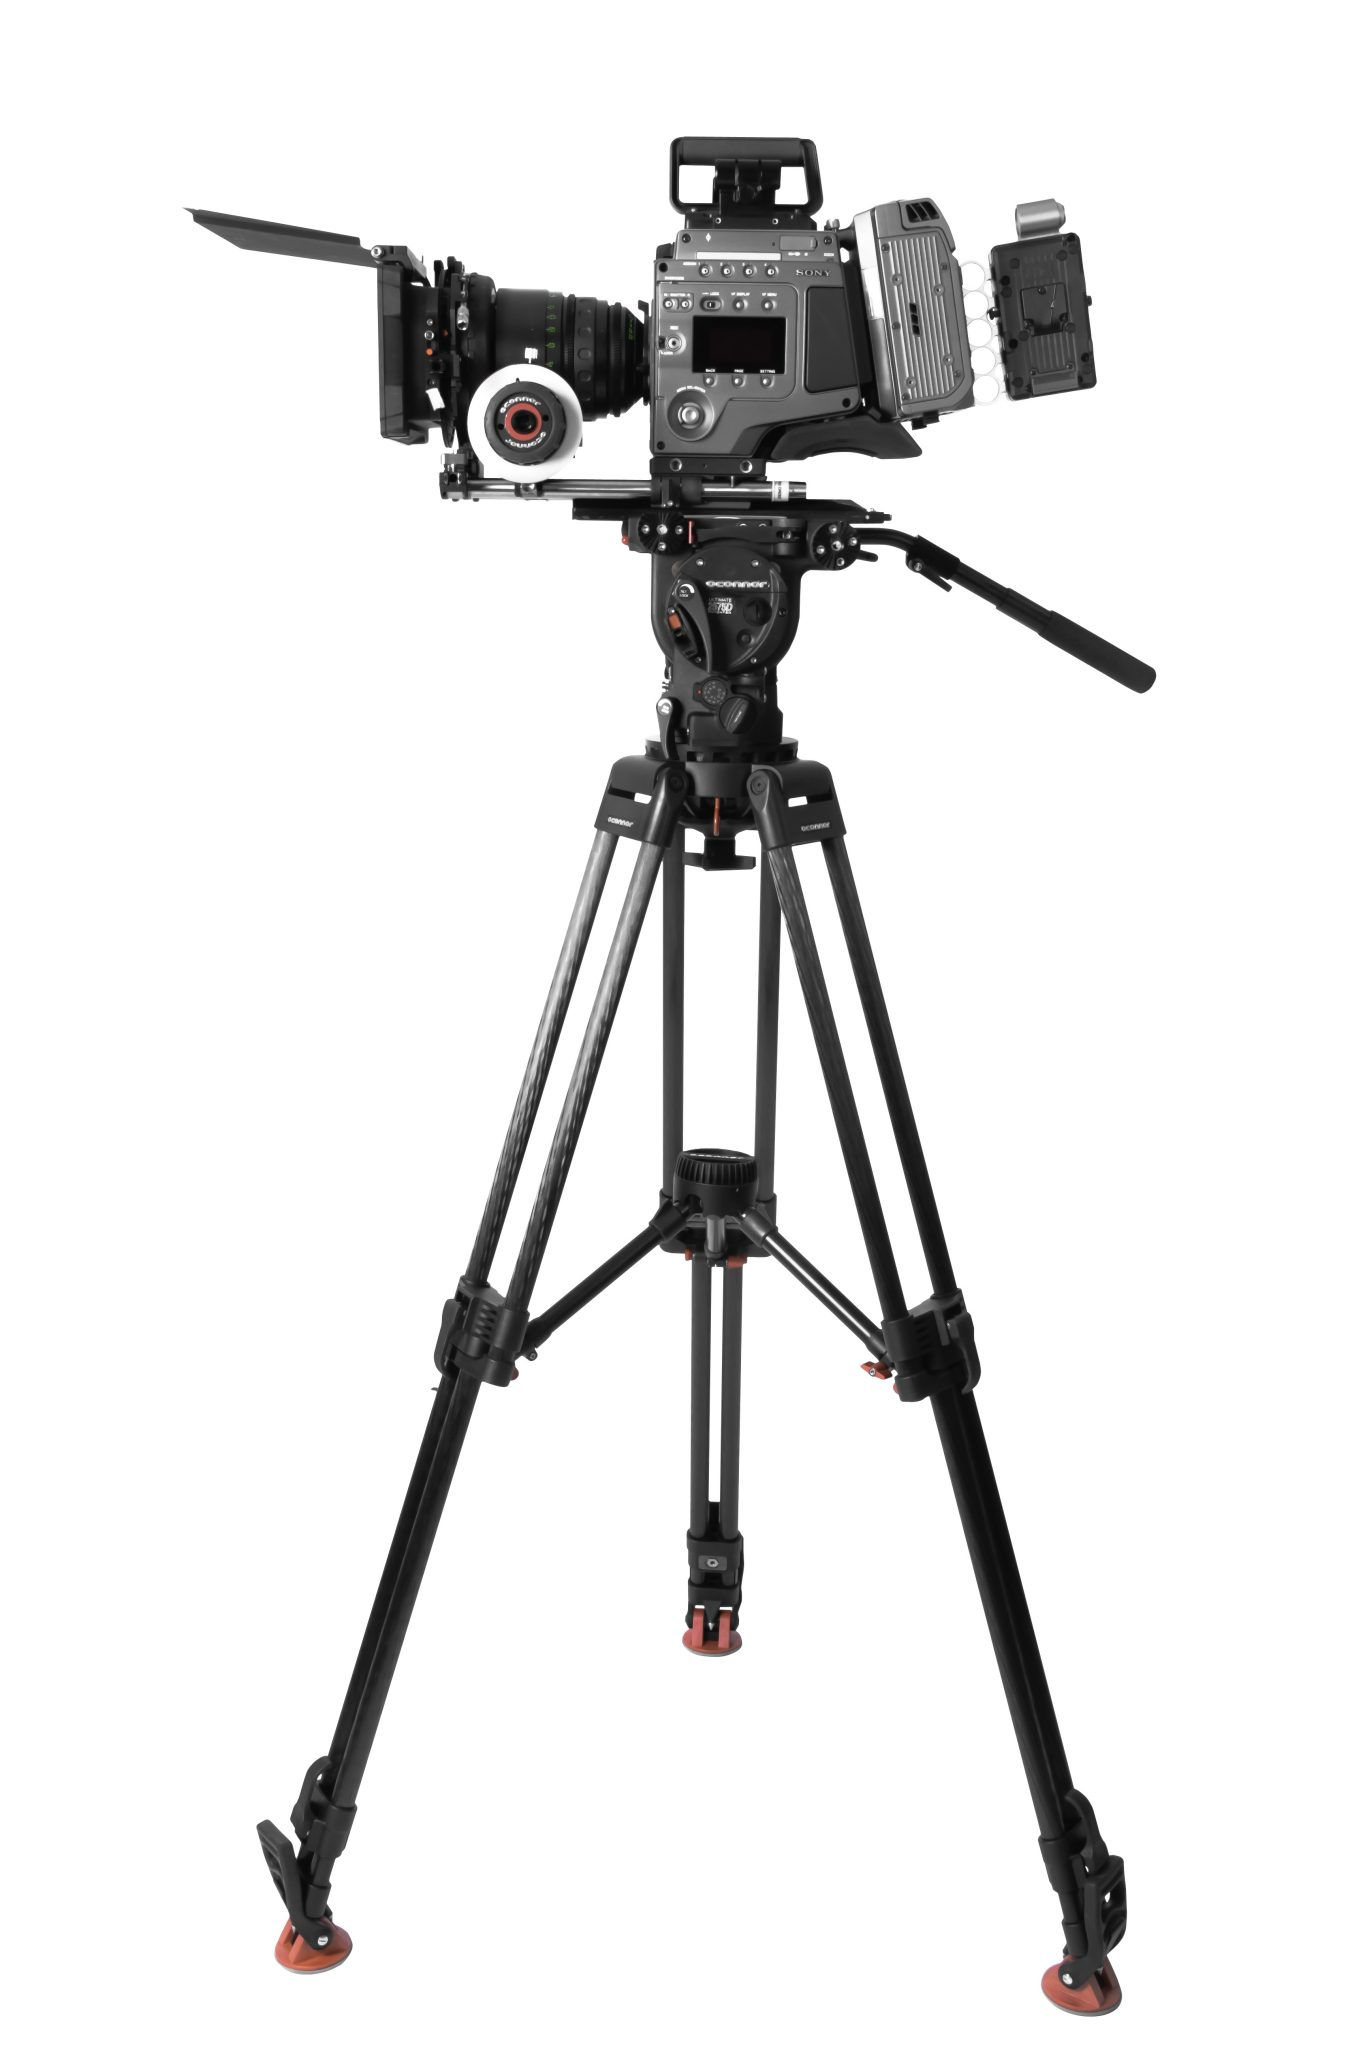 OConnor 60L Tripod & 3 NEW Follow Focus Units at NAB 2014: